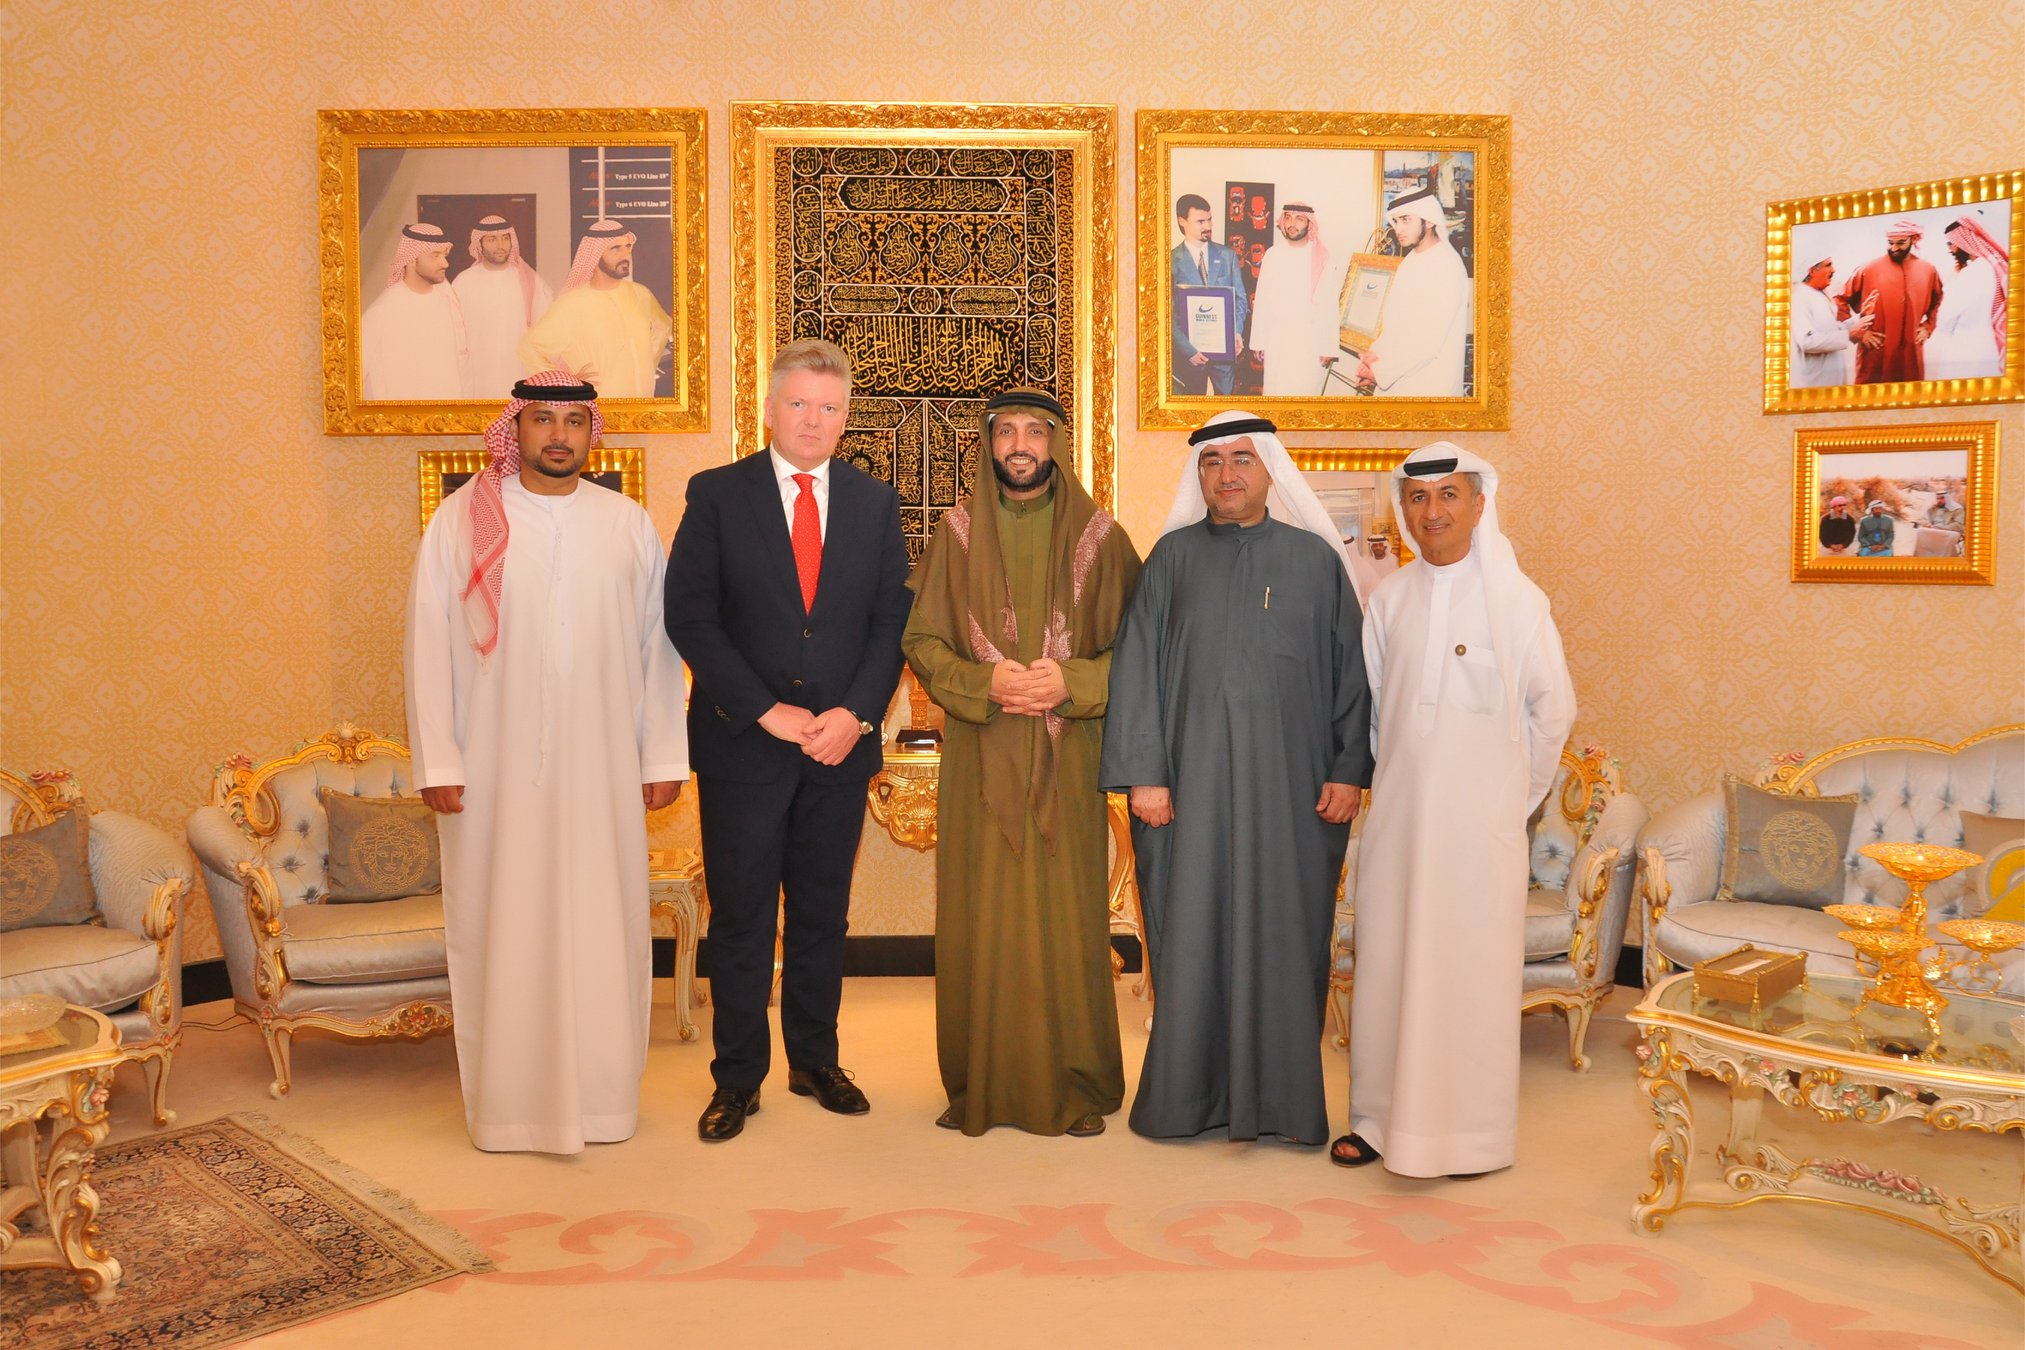 His Excellency Suhail Mohd. Al Zarooni, Guinness World Record Holder, A Philanthropist, An Author, An Emirati Collector, Ambassador at Large and Emirati Businessman called on His Excellency Robert Rostek, The Honorable Polish Ambassador to the UAE followed by Dinner at Jumierah, Dubai, United Arab Emirates.